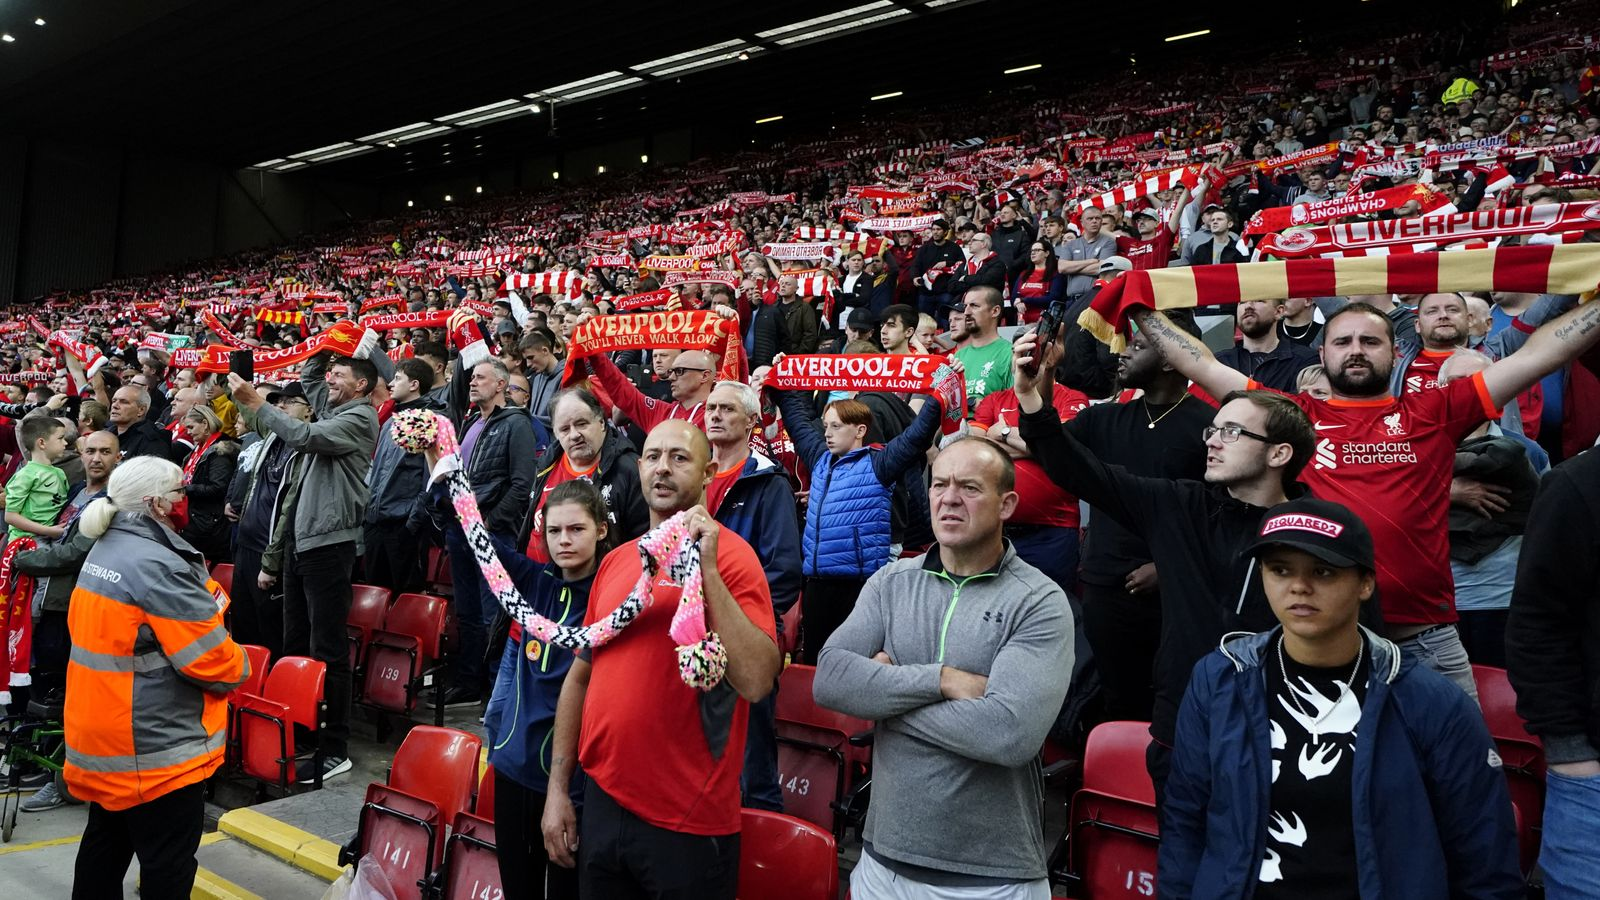 Liverpool confirm Covid-19 spot-checks in operation for supporters attending Manchester City game at Anfield